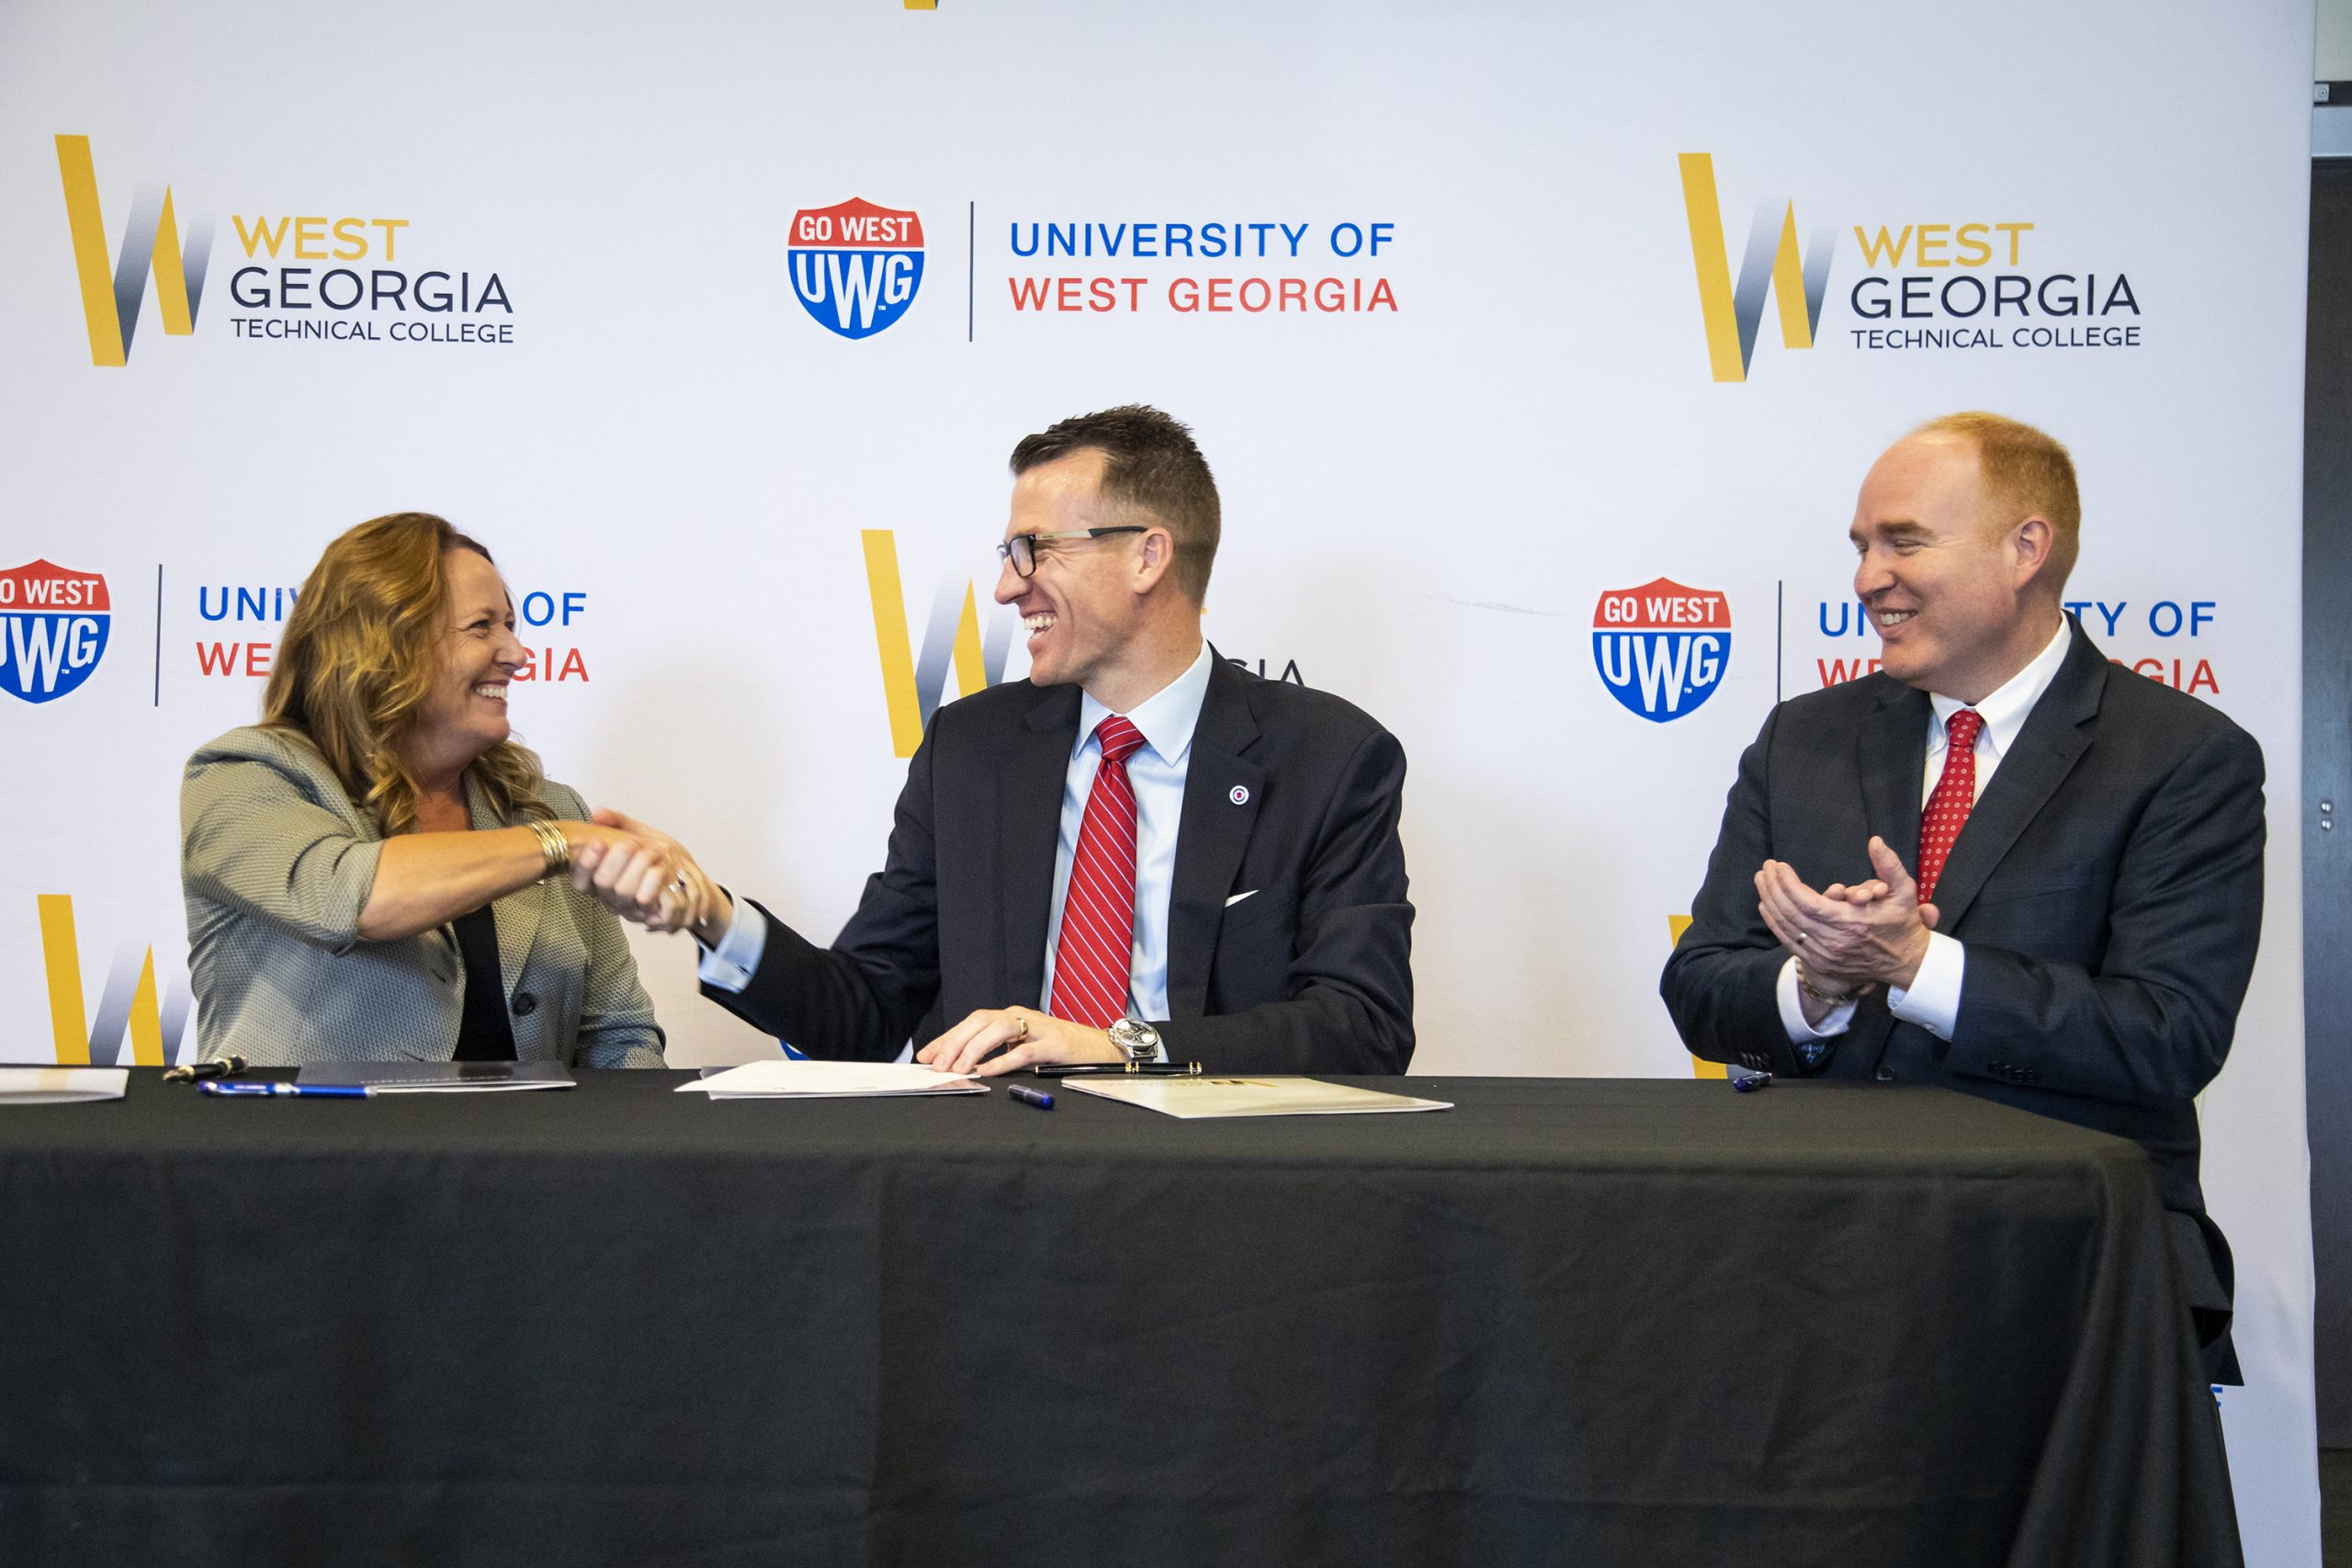 West Georgia Technical College President Dr. Julie Pos, shakes hands with University of West Georgia President Dr. Brendan Kelly as UWG's Provost and Senior Vice President Dr. Jon Preston looks on.